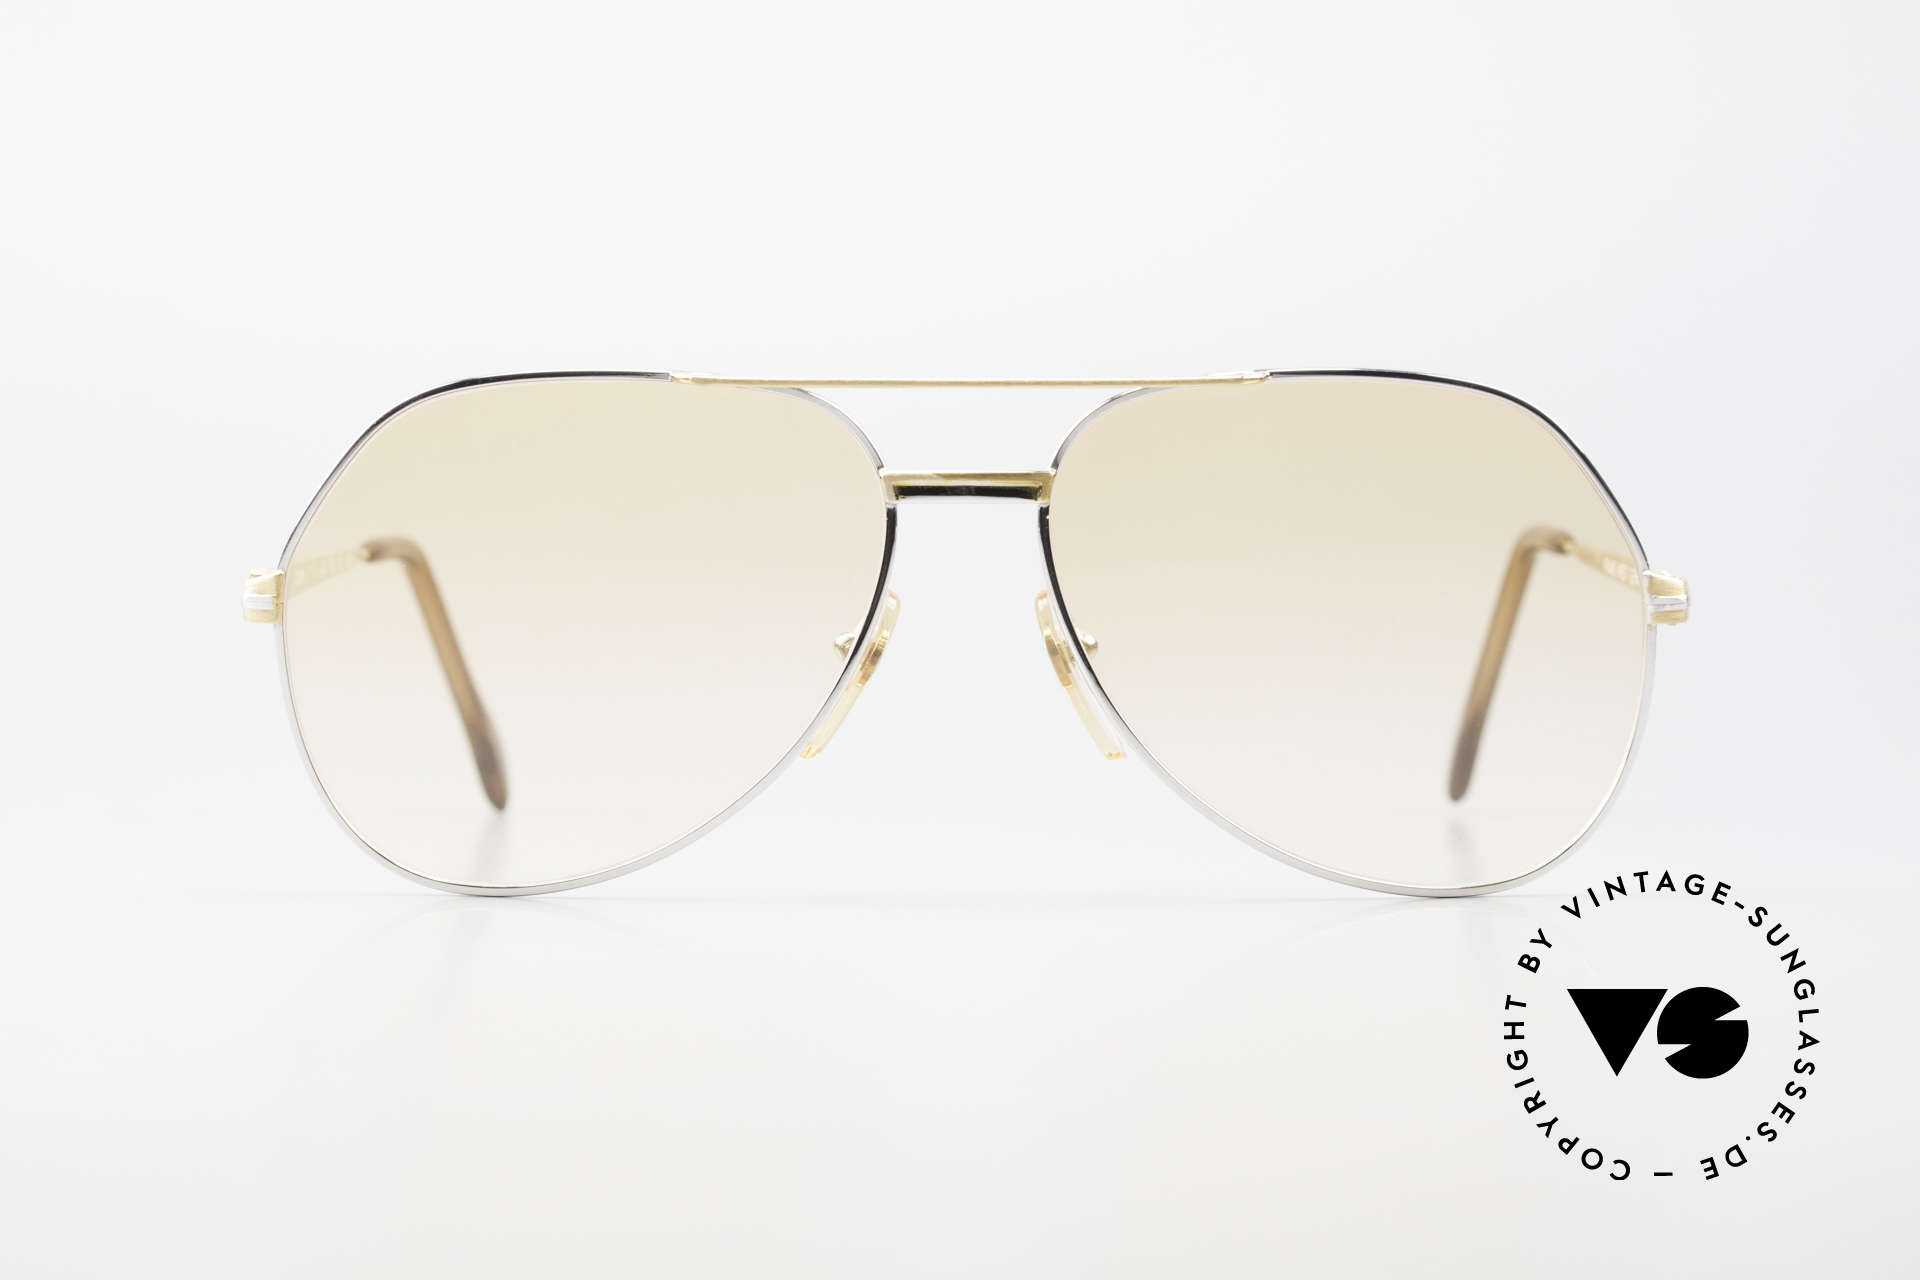 Zollitsch Cadre 1 West Germany Sunglasses 80's, tangible, high-end quality (naturally at that time), Made for Men